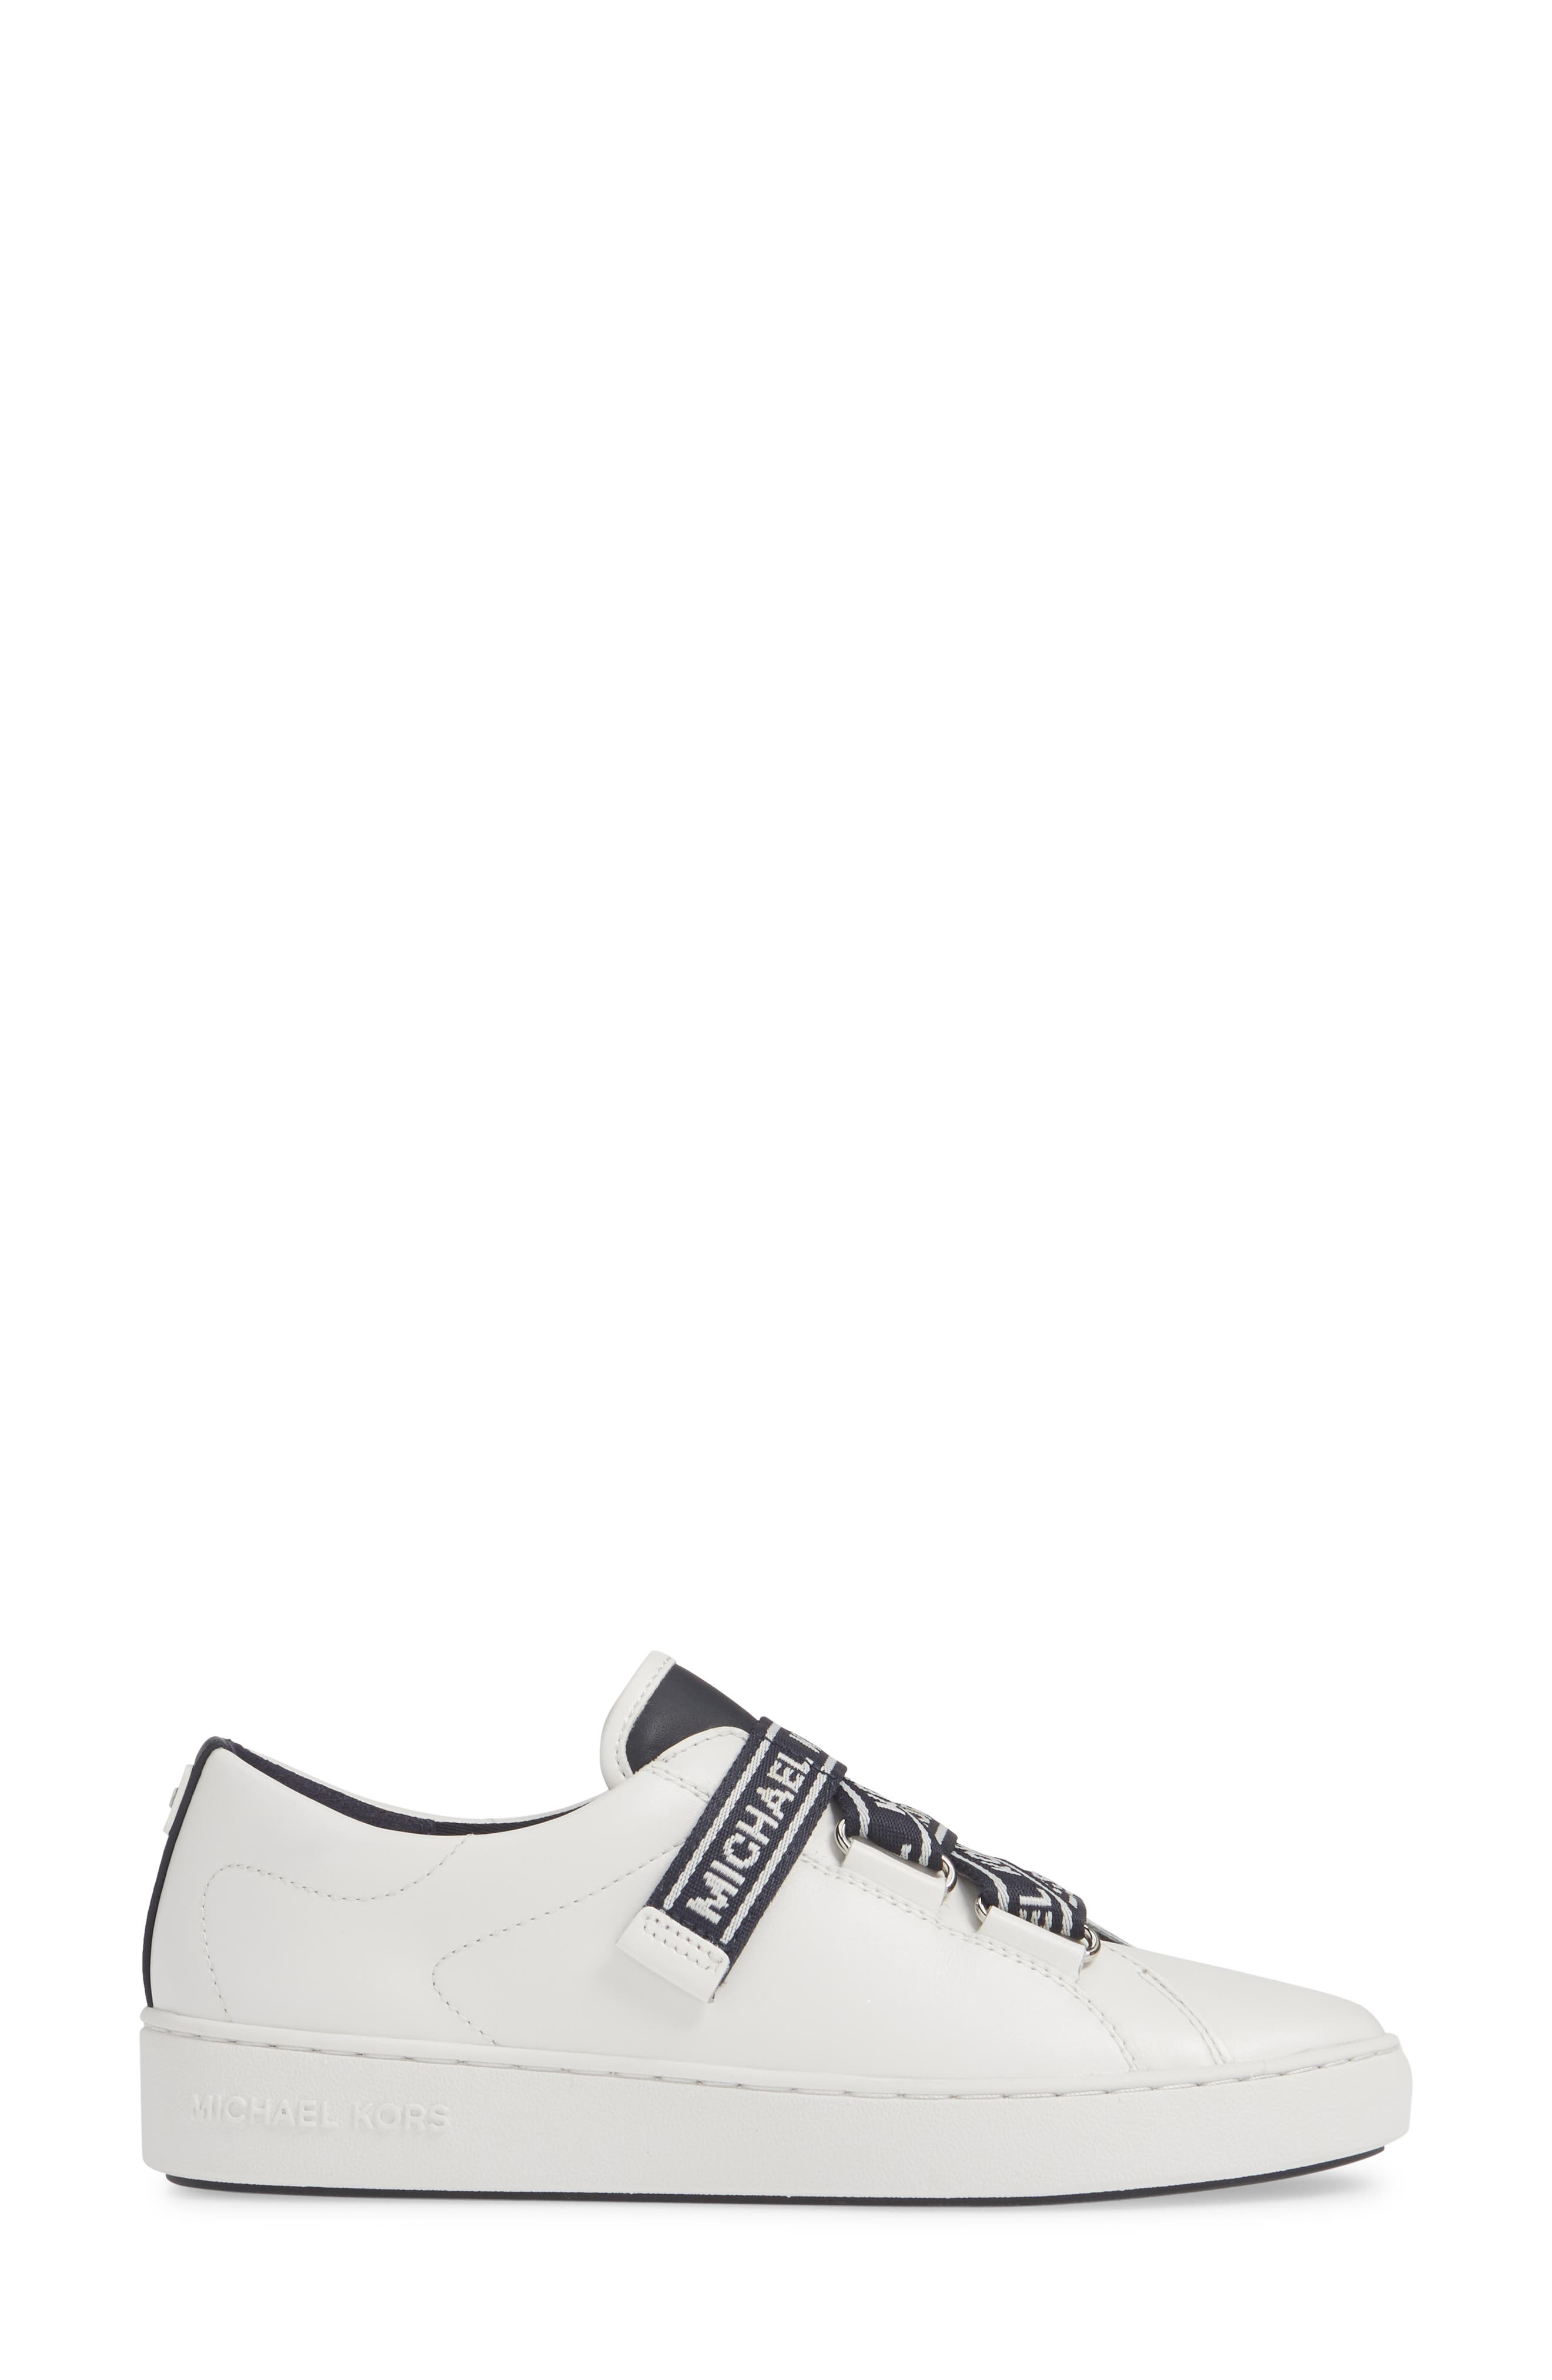 MICHAEL MICHAEL KORS, Casey Low Top Sneaker, Alternate thumbnail 3, color, ADMIRAL/ WHITE